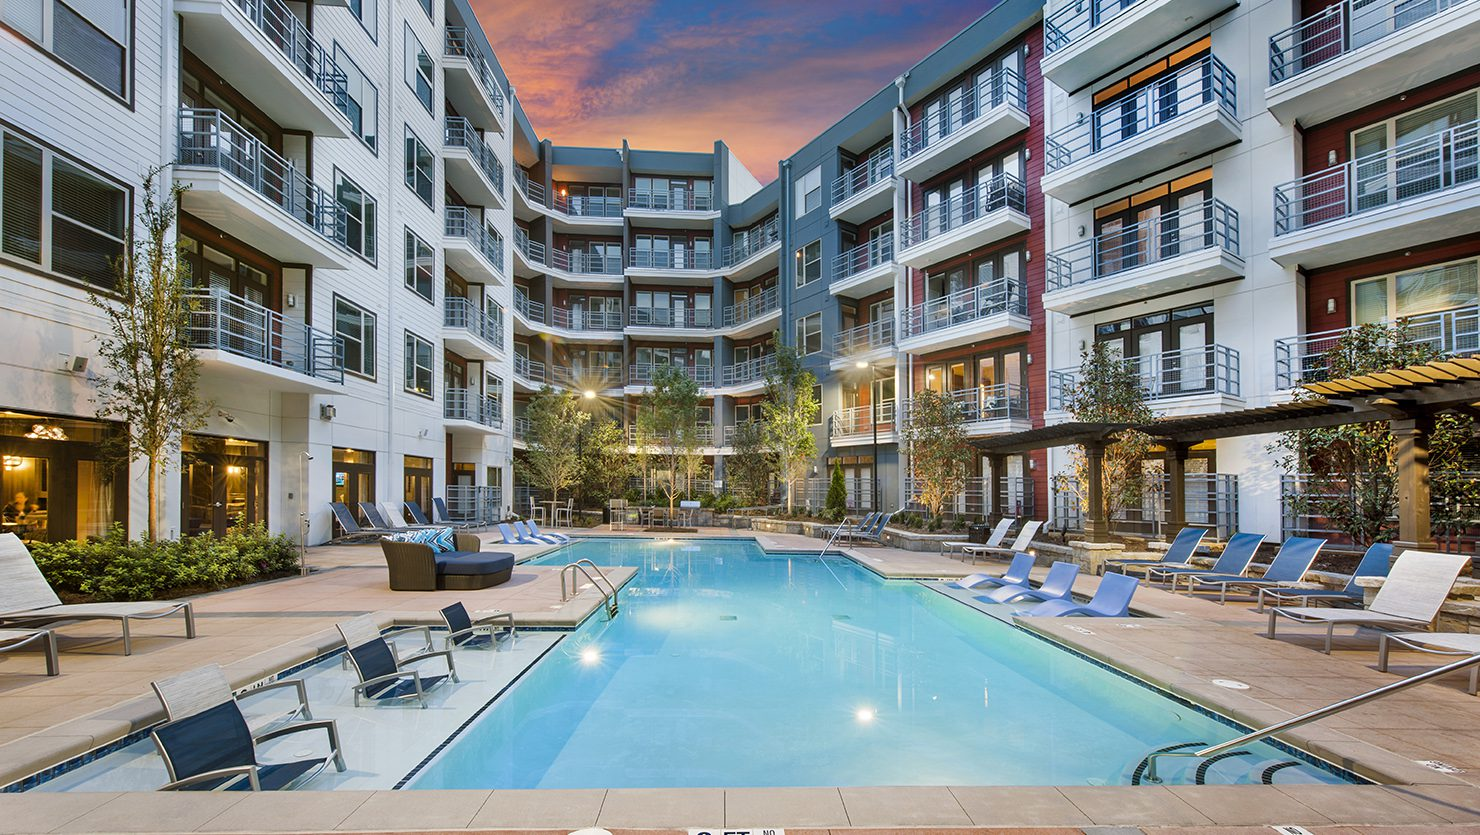 Bell Glenridge Pool Courtyard